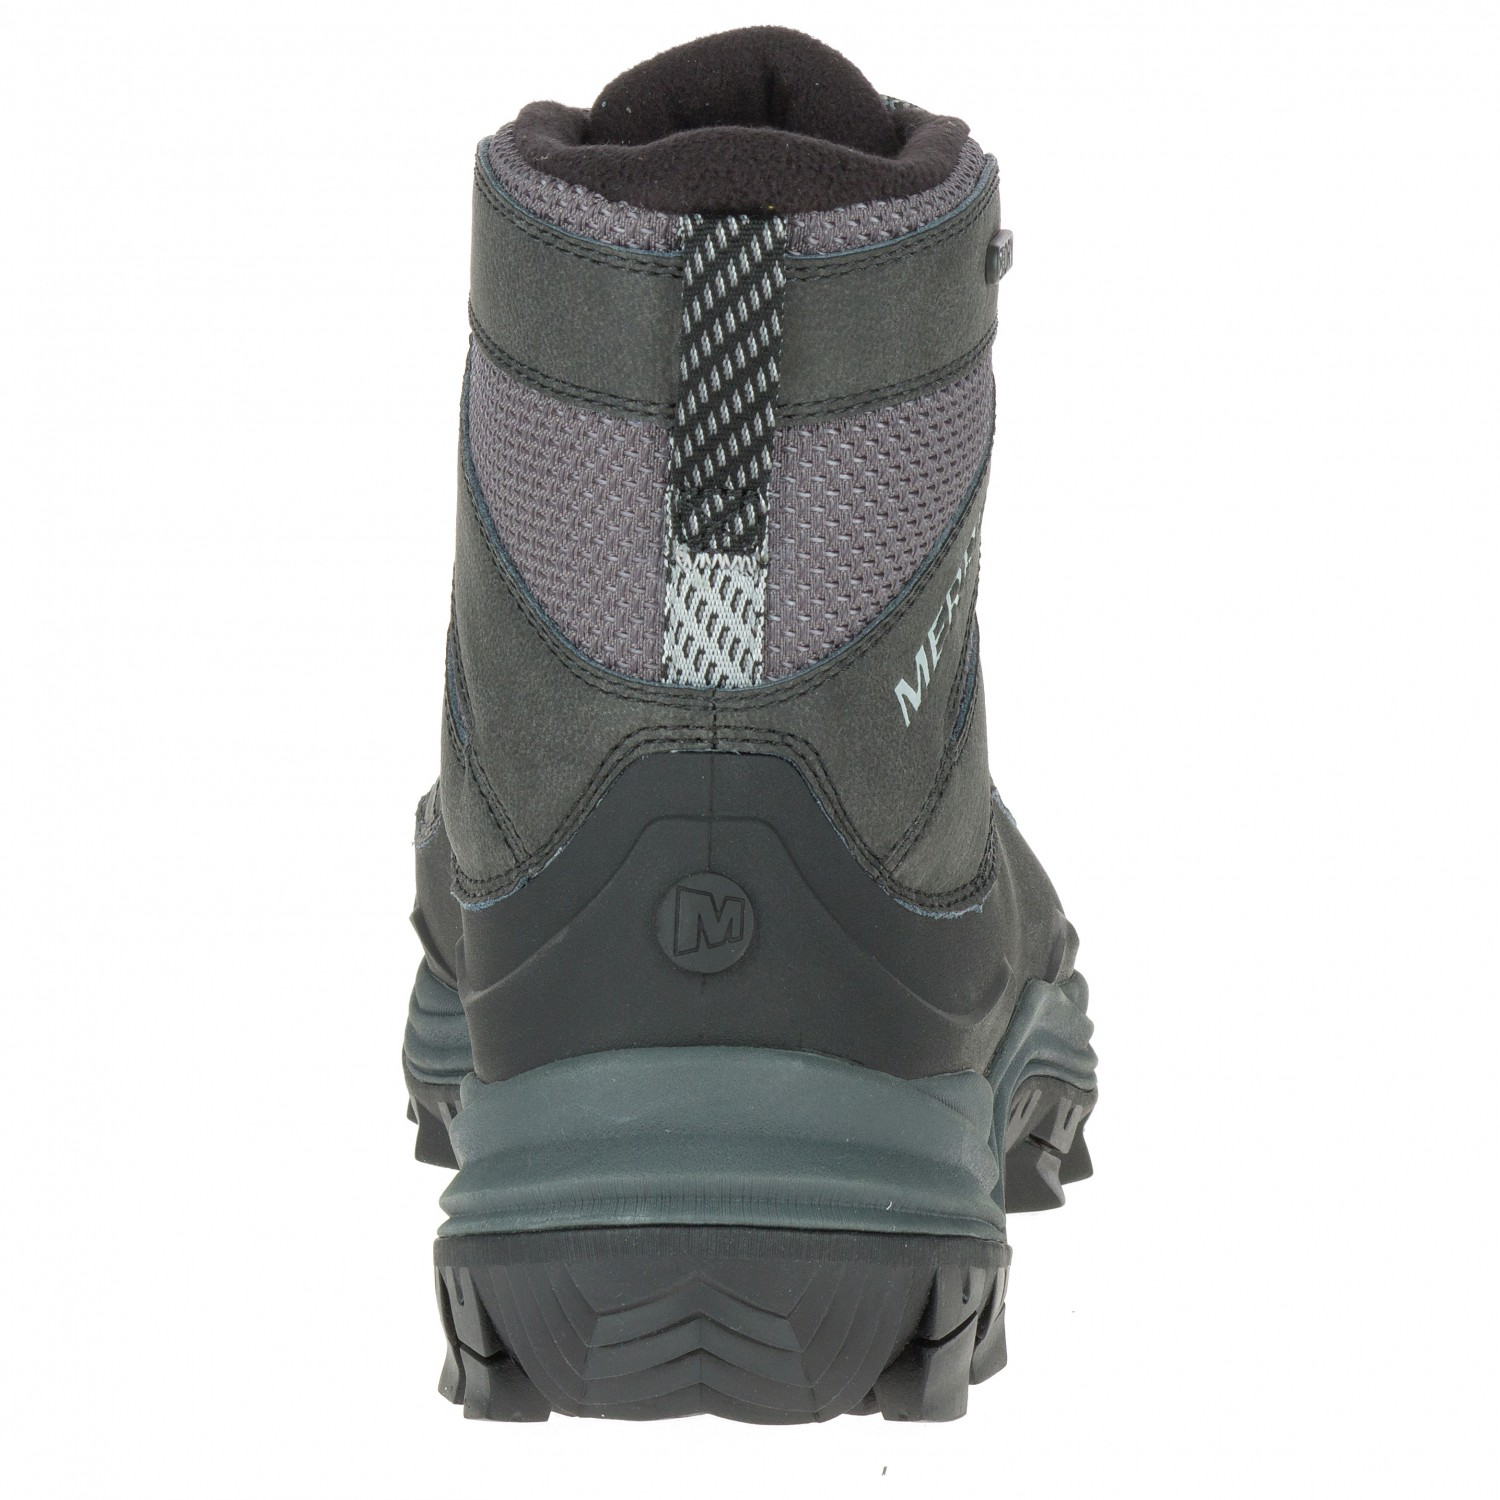 f17a72b8 Merrell - Thermo Chill Mid Shell Waterproof - Winter boots